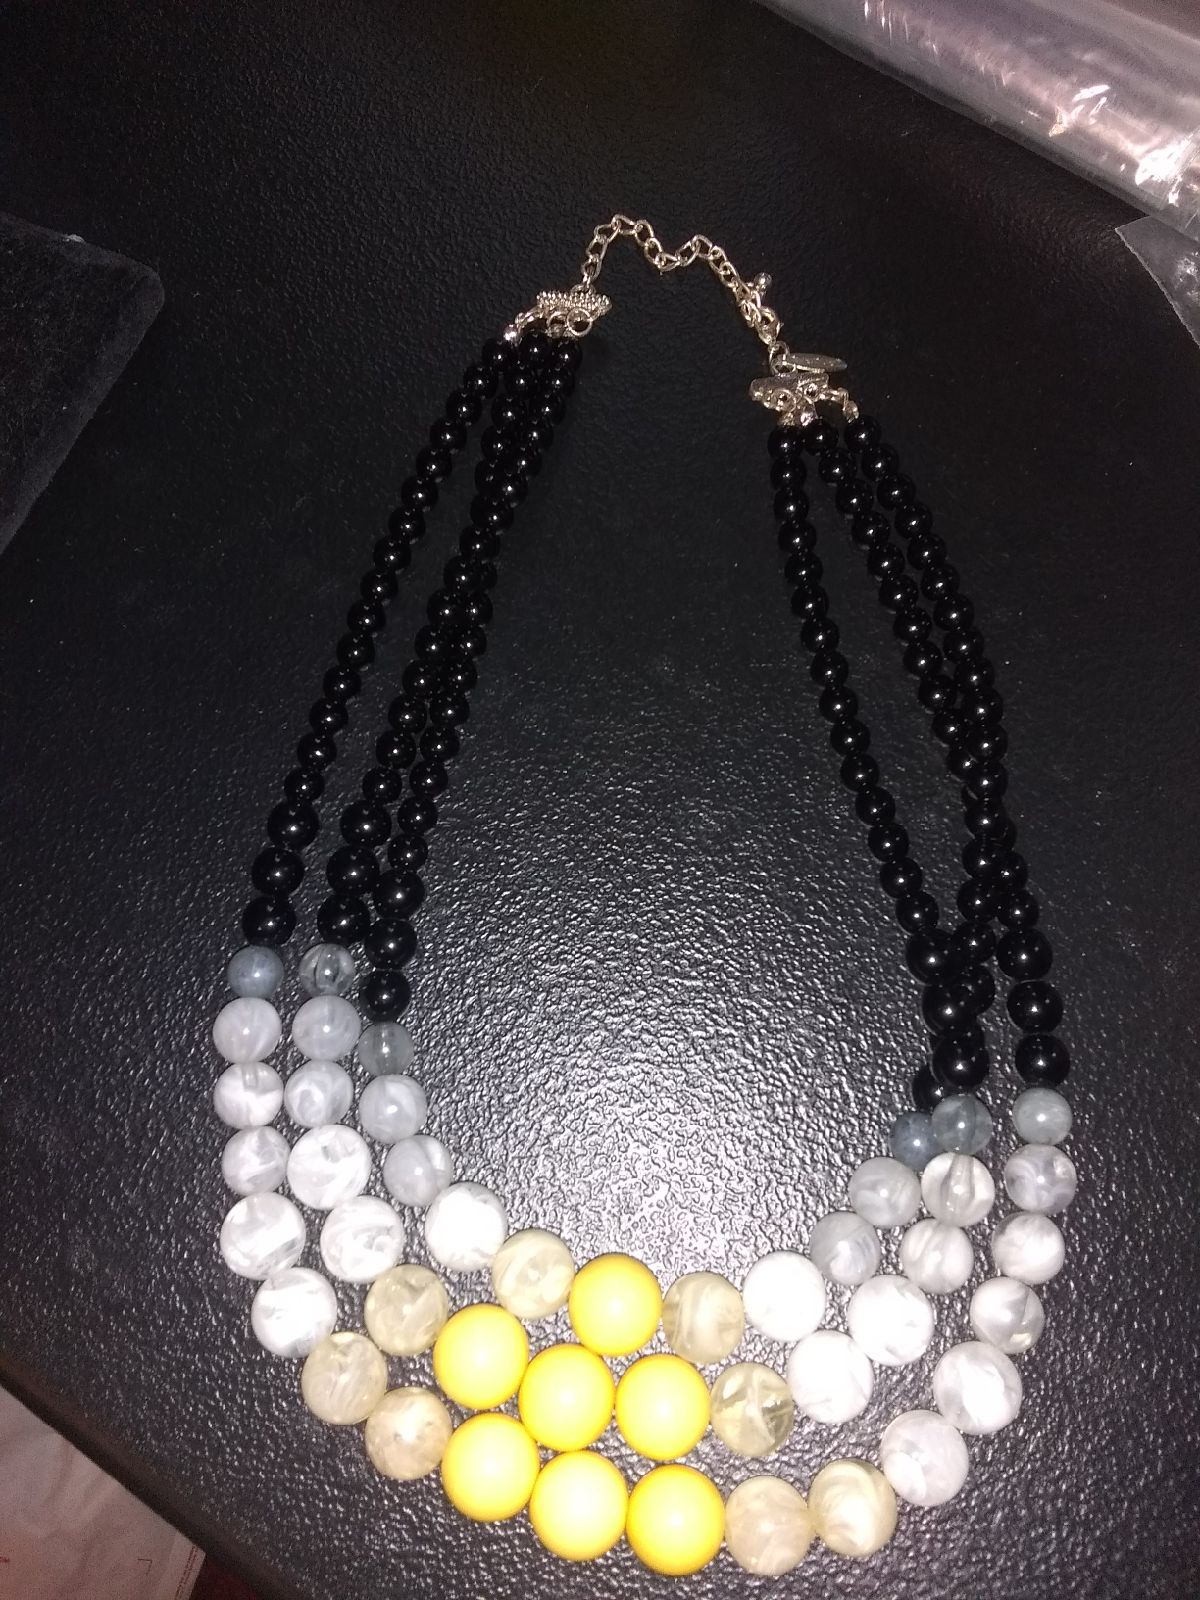 BRILLIANT YELLOW AND WHITE NECKLACE